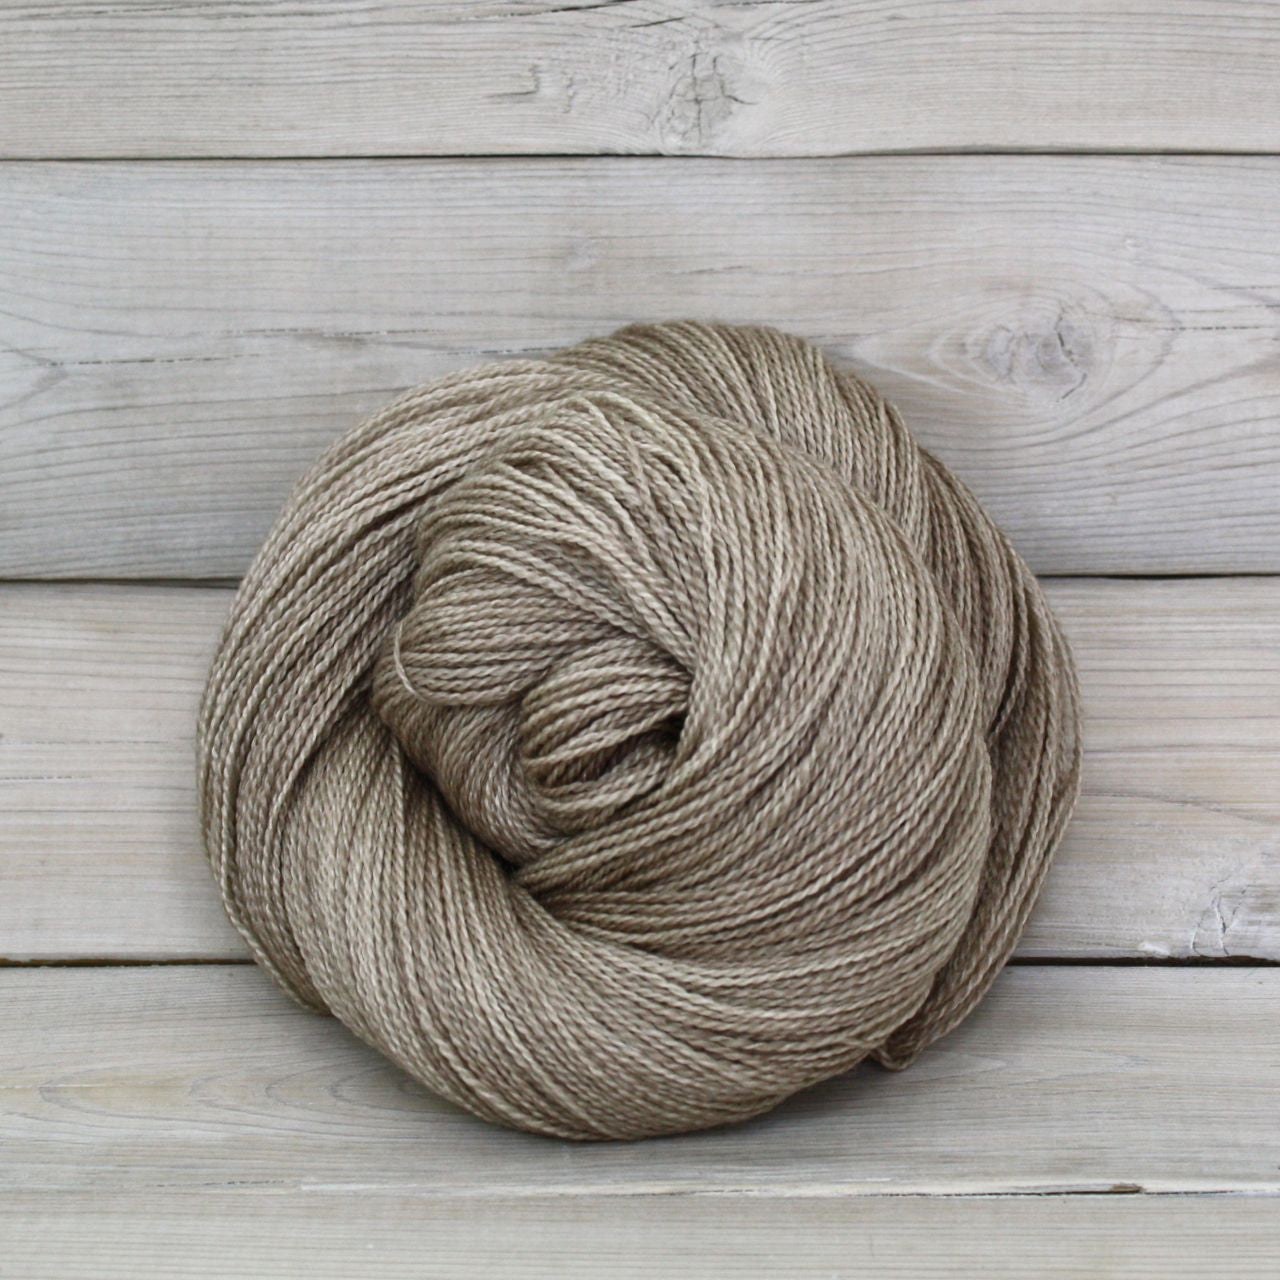 Luna Grey Fiber Arts Starbright Yarn | Colorway: Oatmeal